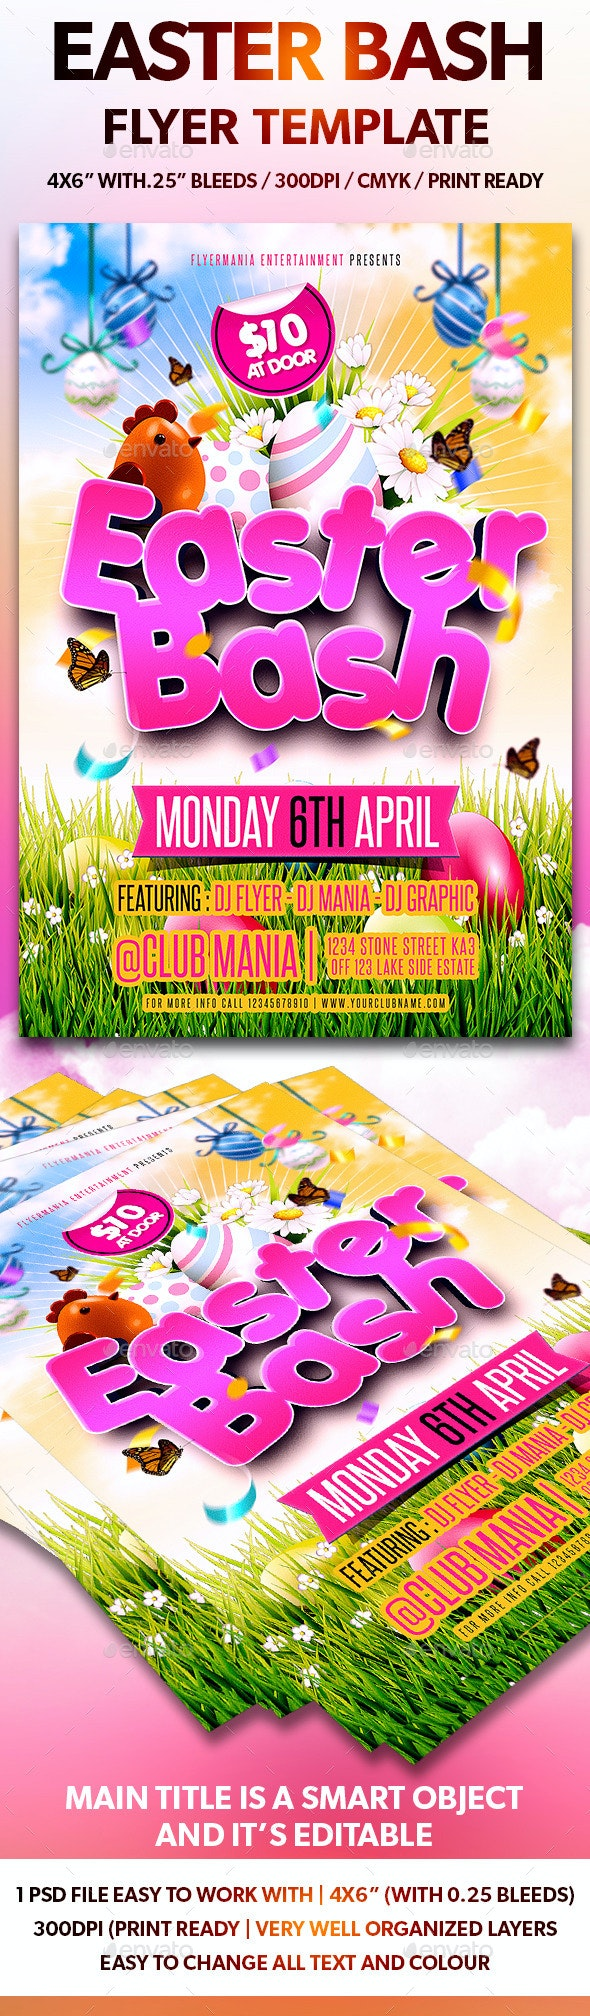 Easter Bash Flyer Template - Flyers Print Templates